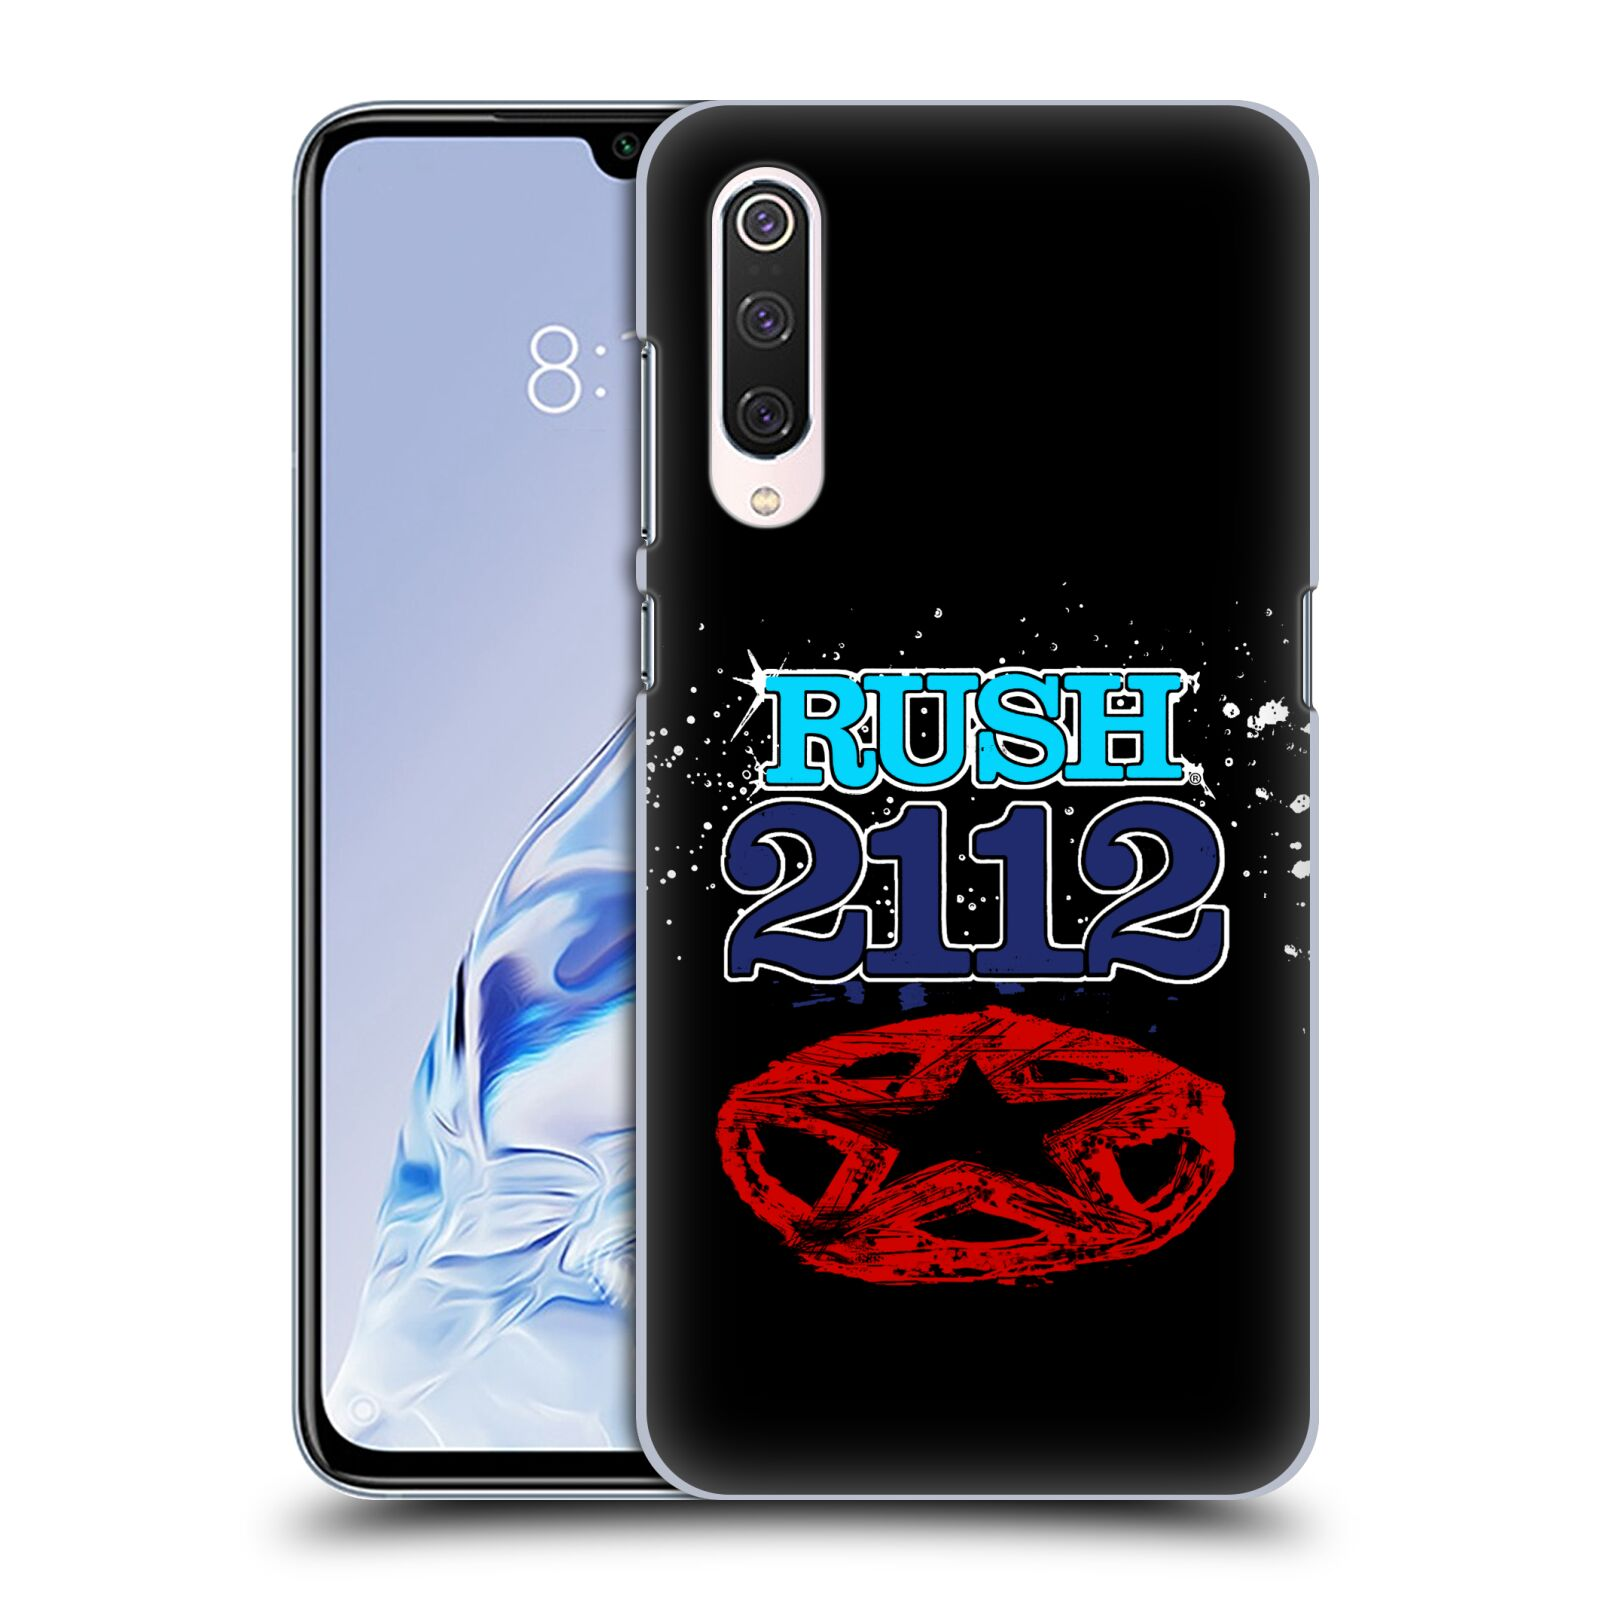 Official Rush Key Art 2112 Back Case for Xiaomi Mi 9 Pro / 5G